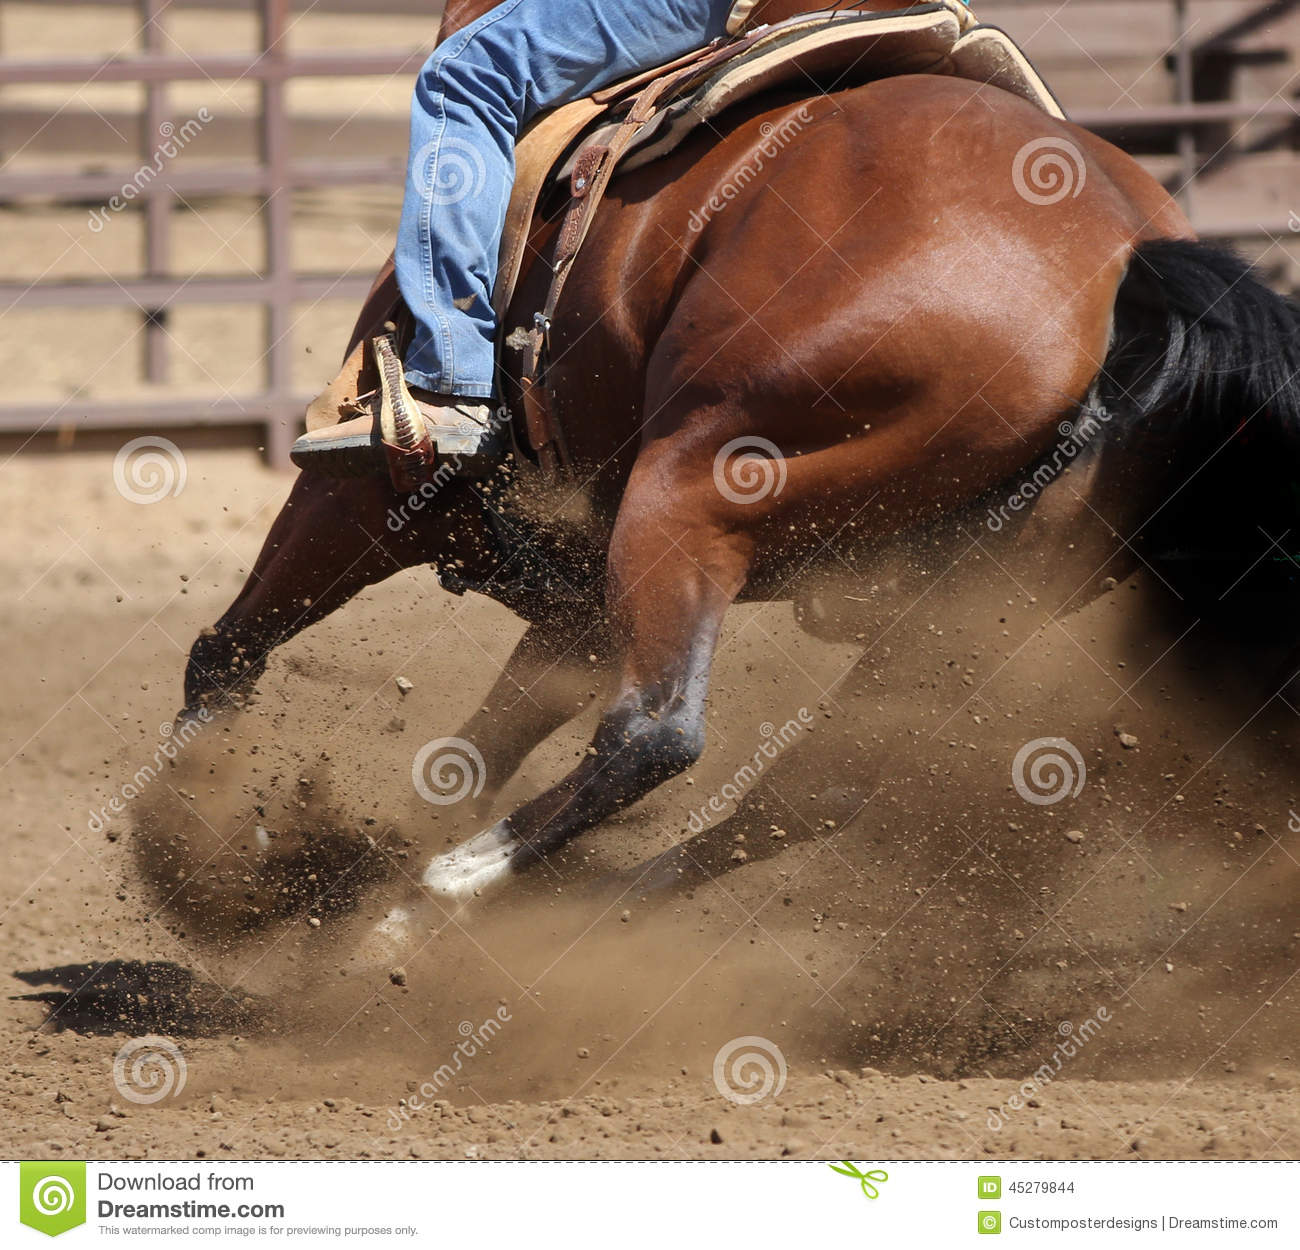 Download A Close Up View Of A Horse And Flying Dirt. Stock Photo - Image of competition, bike: 45279844